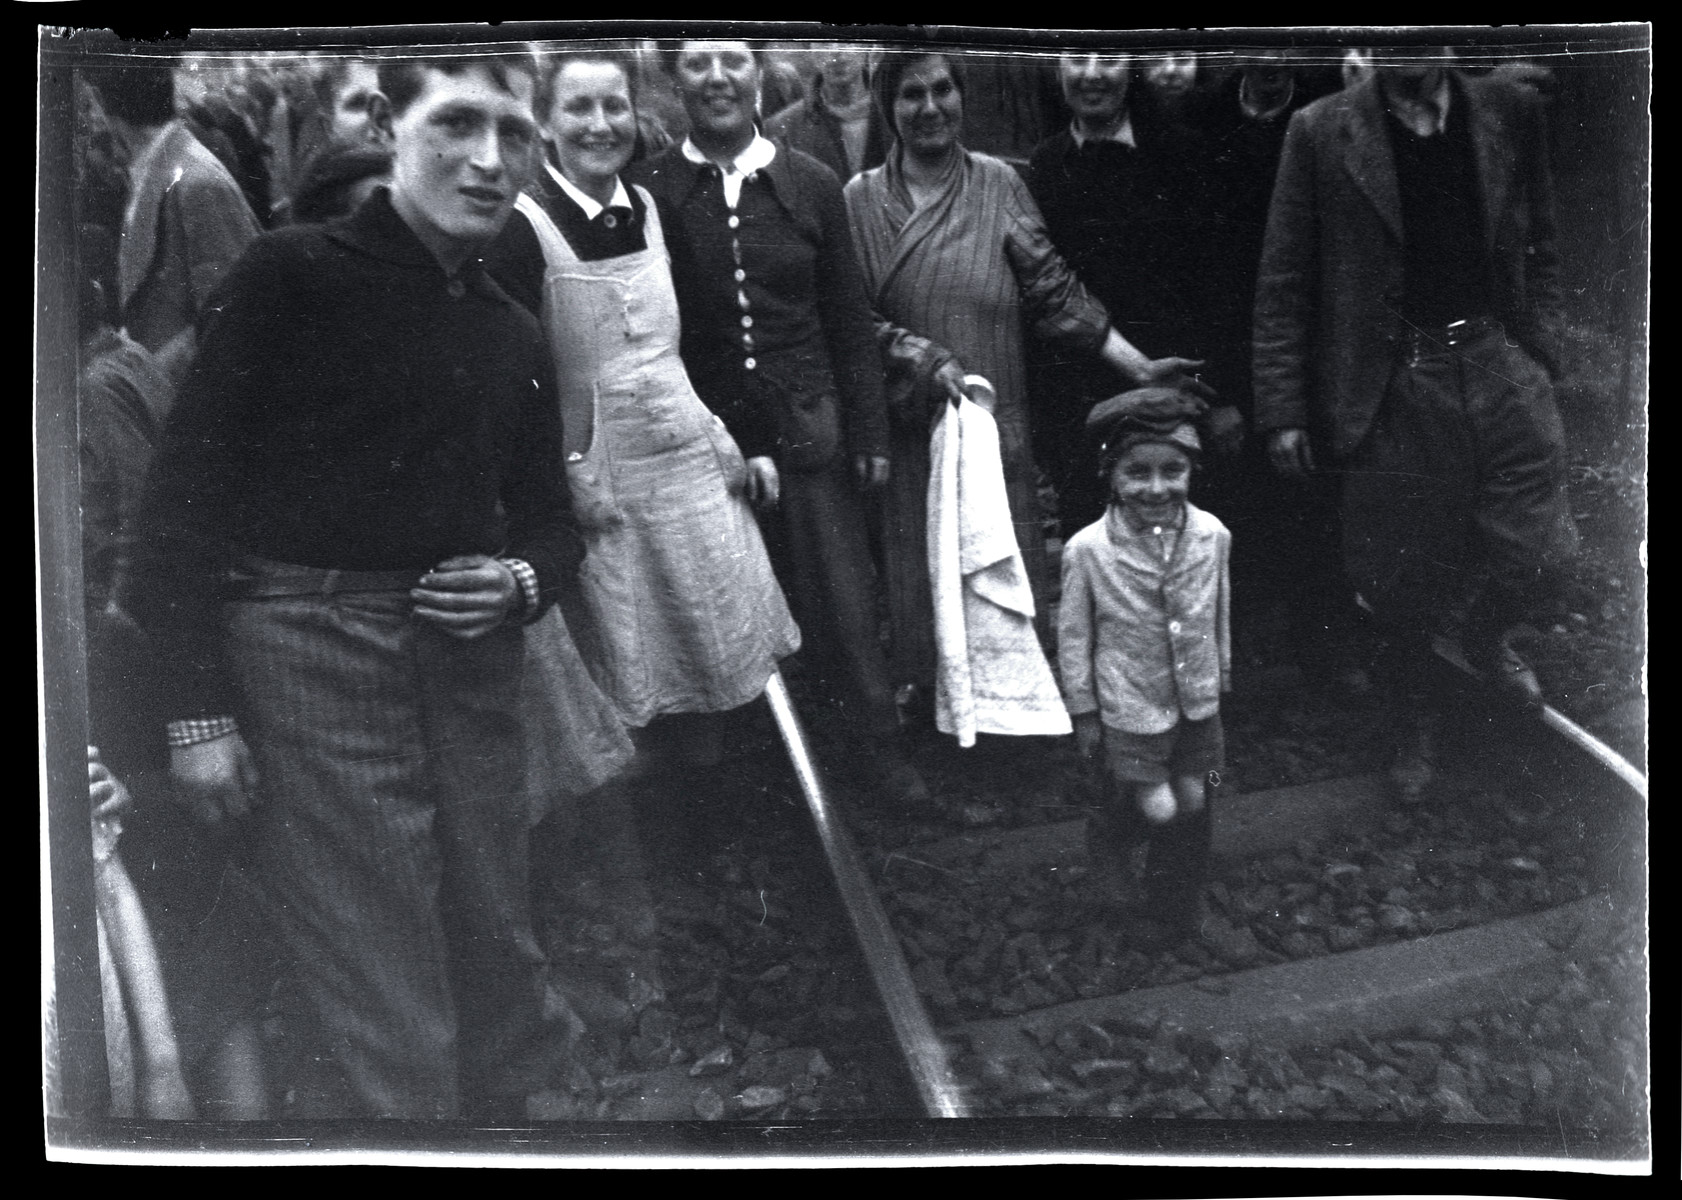 Survivors from Bergen-Belsen pose by the train tracks shortly after their liberation.